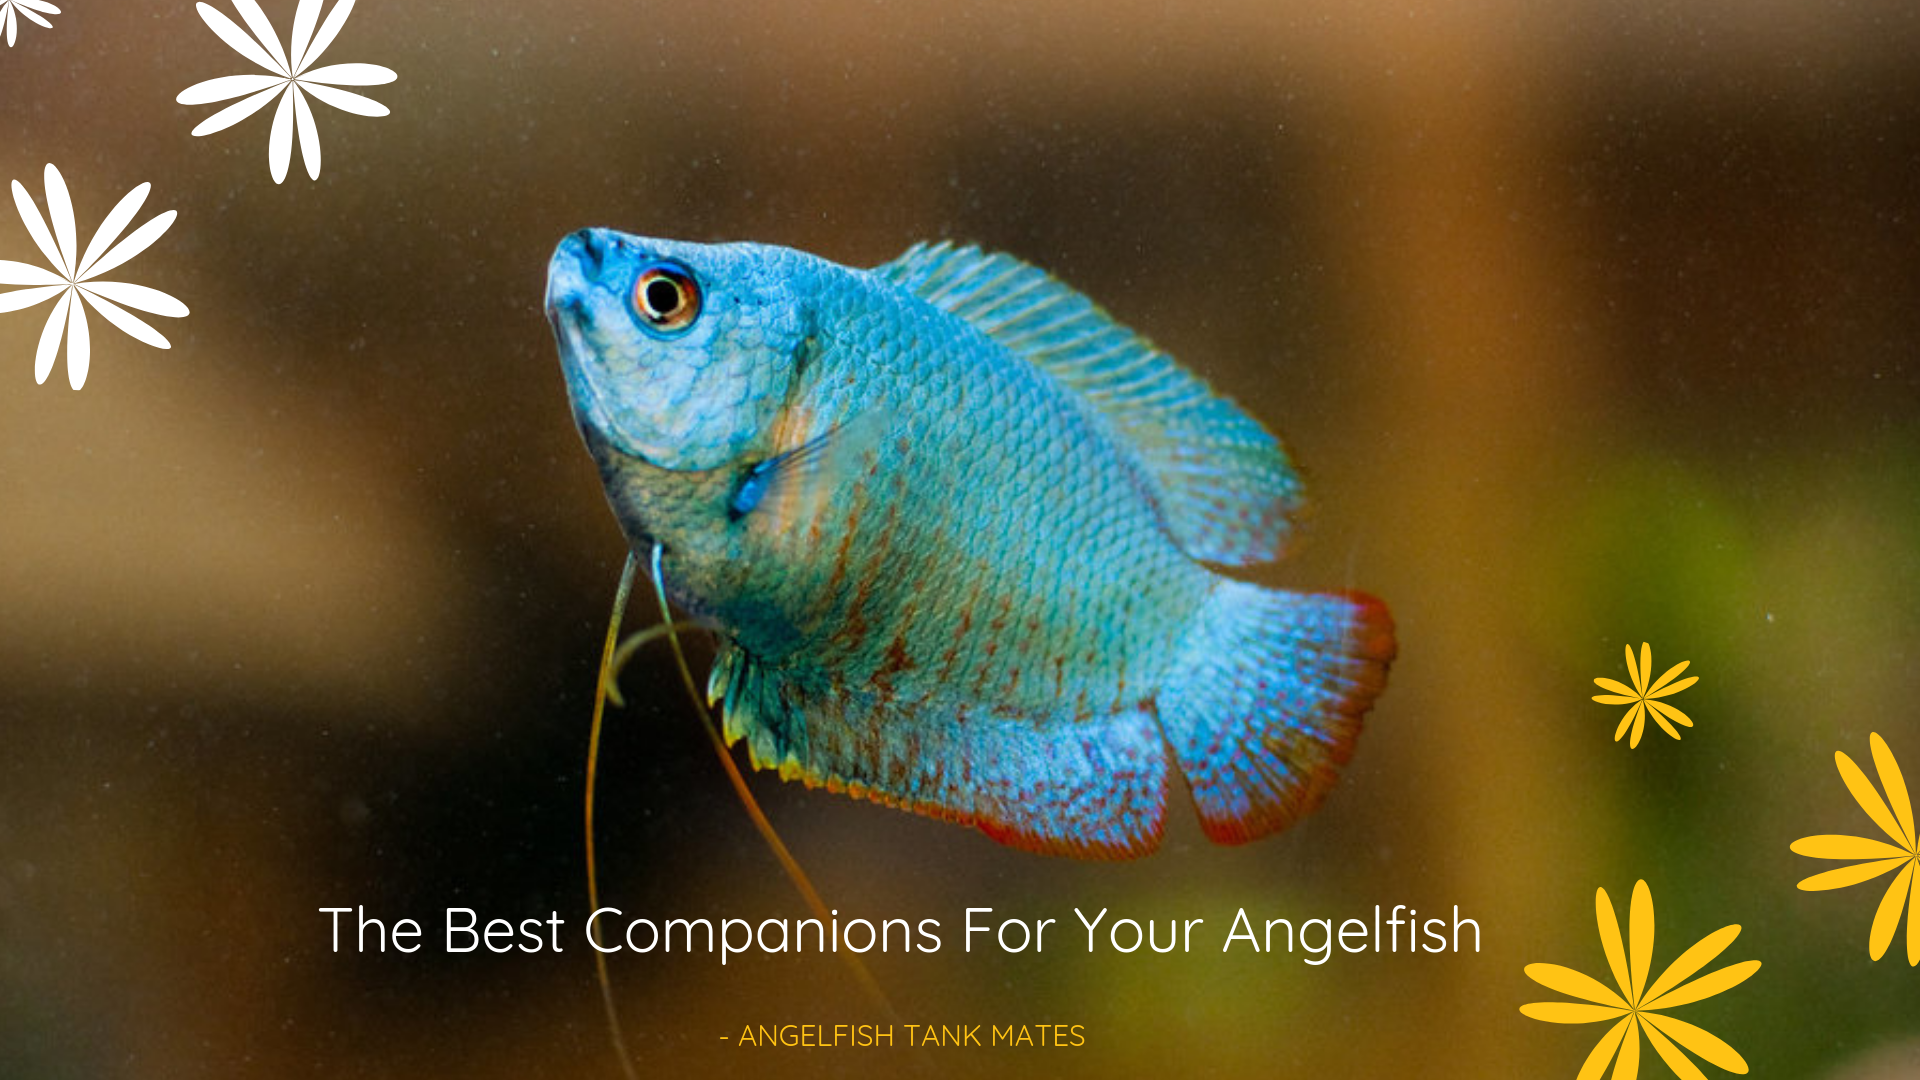 The Best Companions For Your Angelfish Angelfish Tank Mates